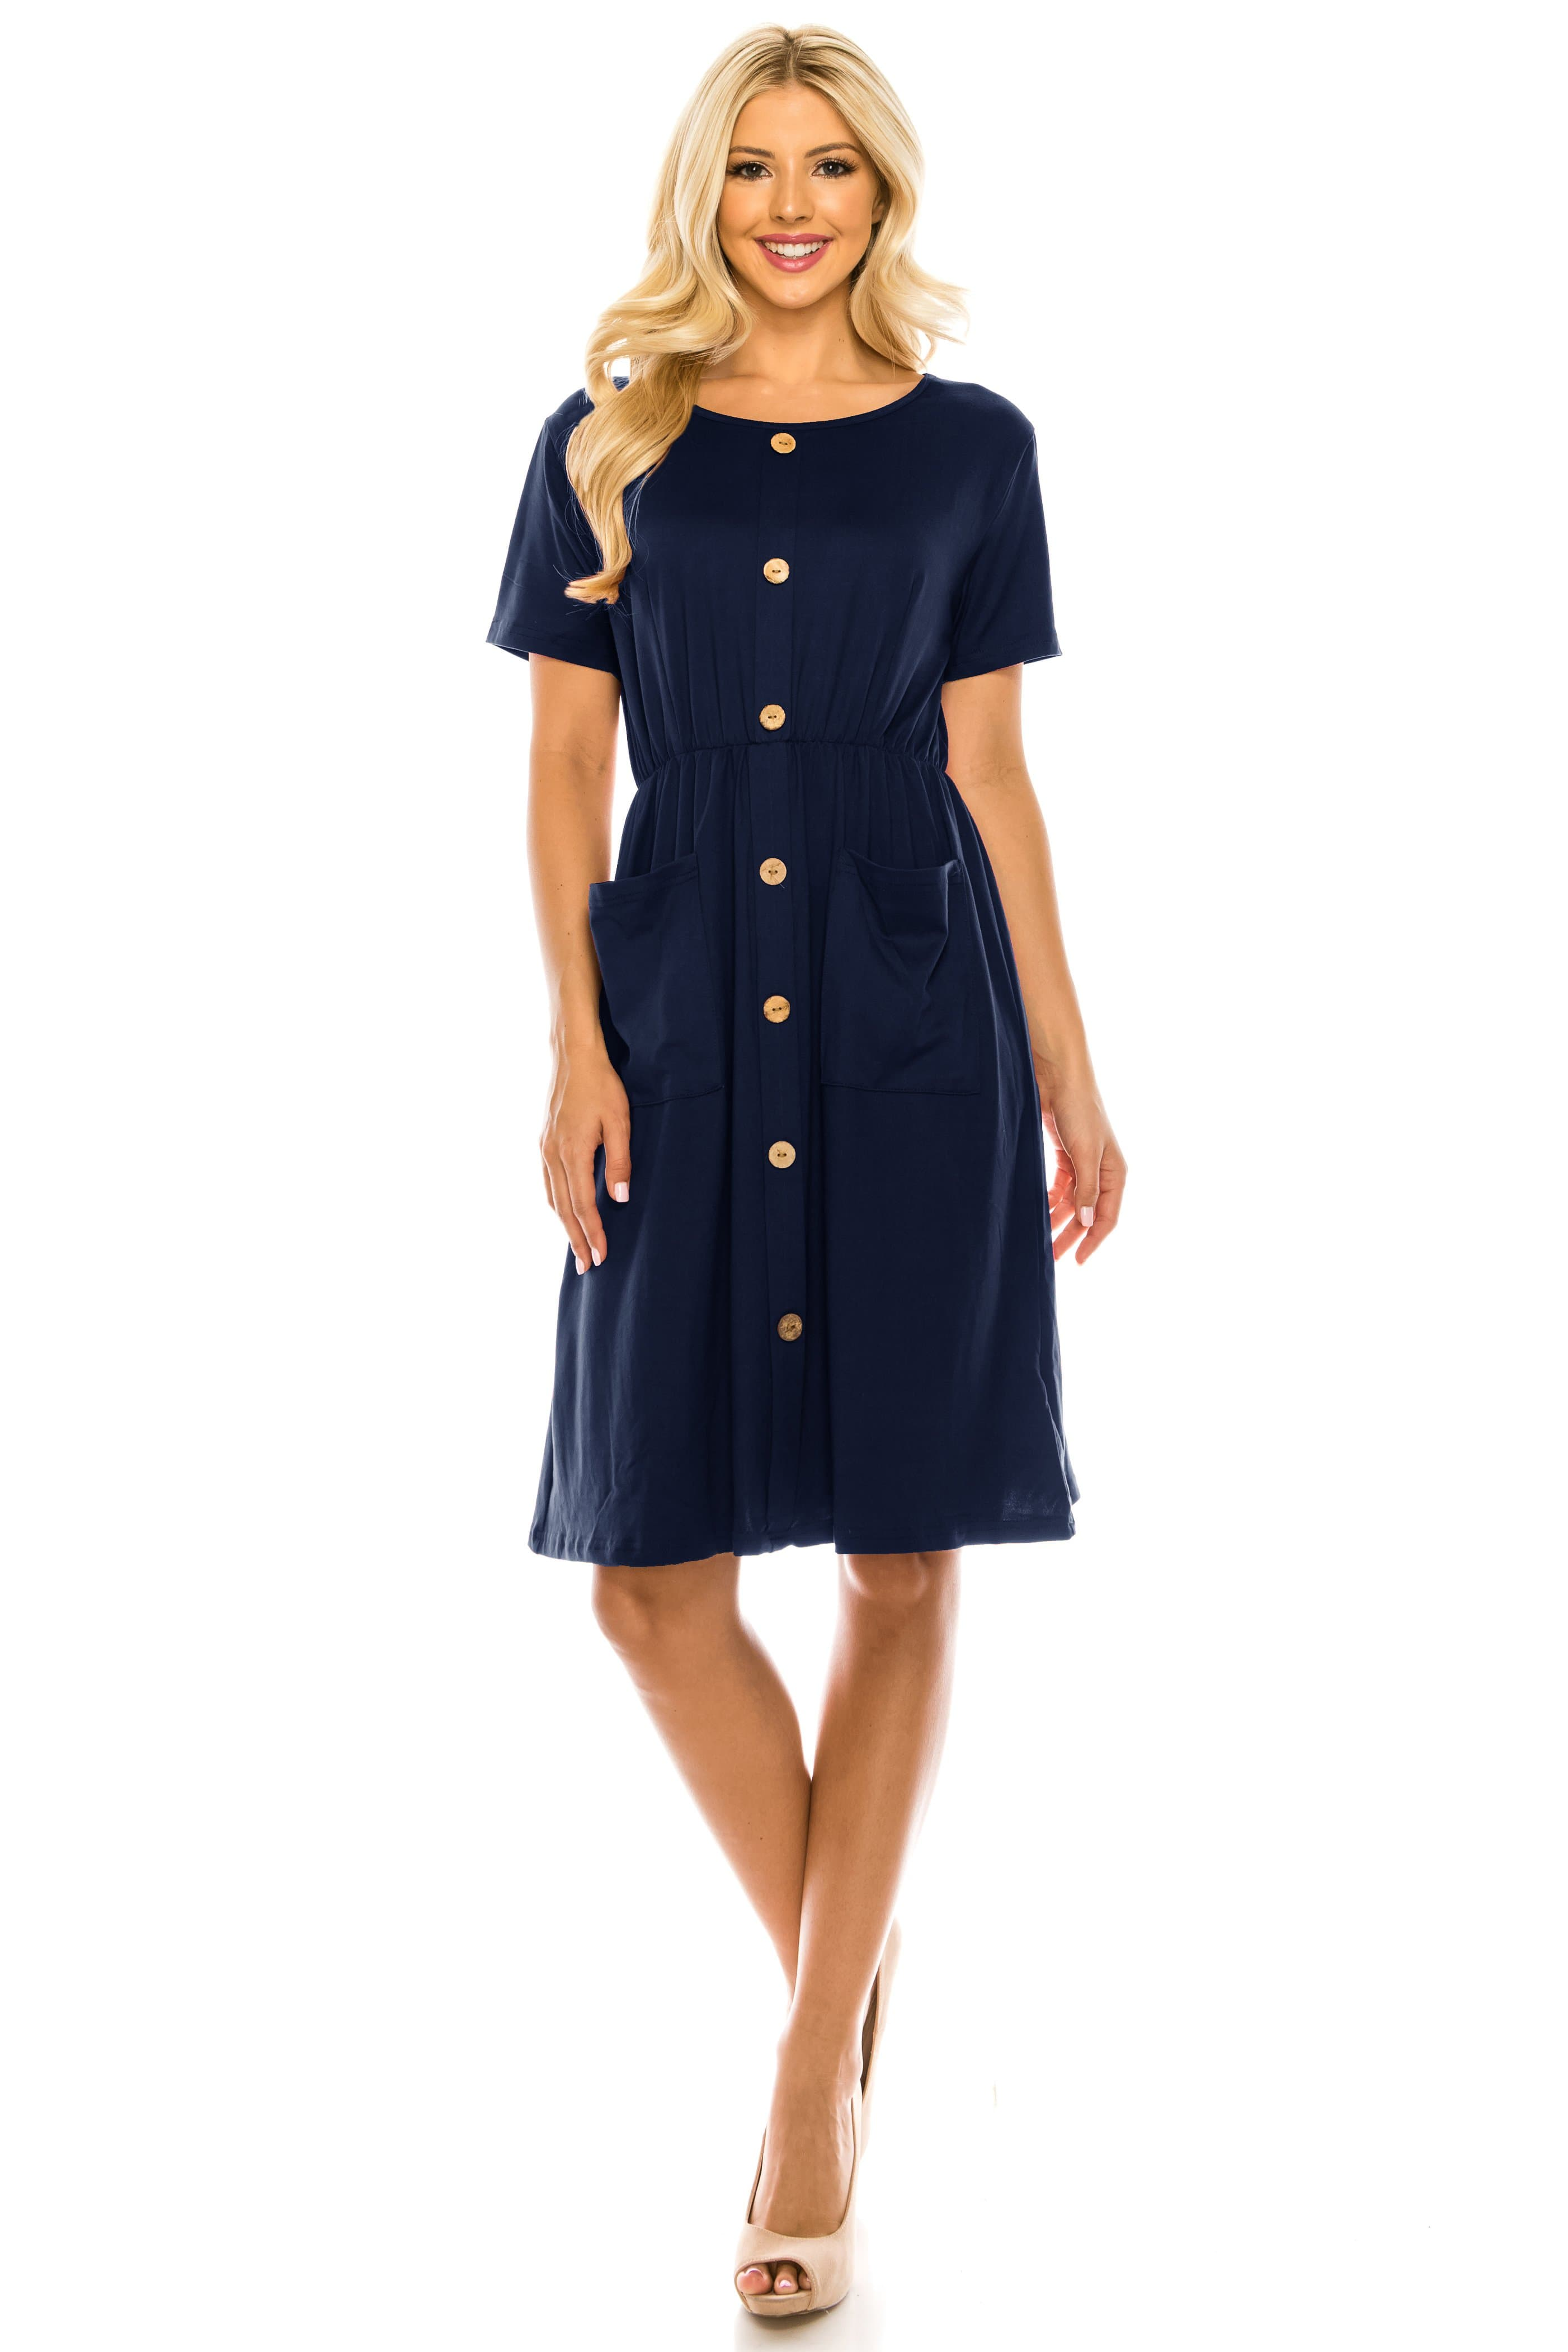 DAILYHAUTE Women's dress NAVY / S Haute Edition Women's Crewneck Button Down Dress With Front Pockets